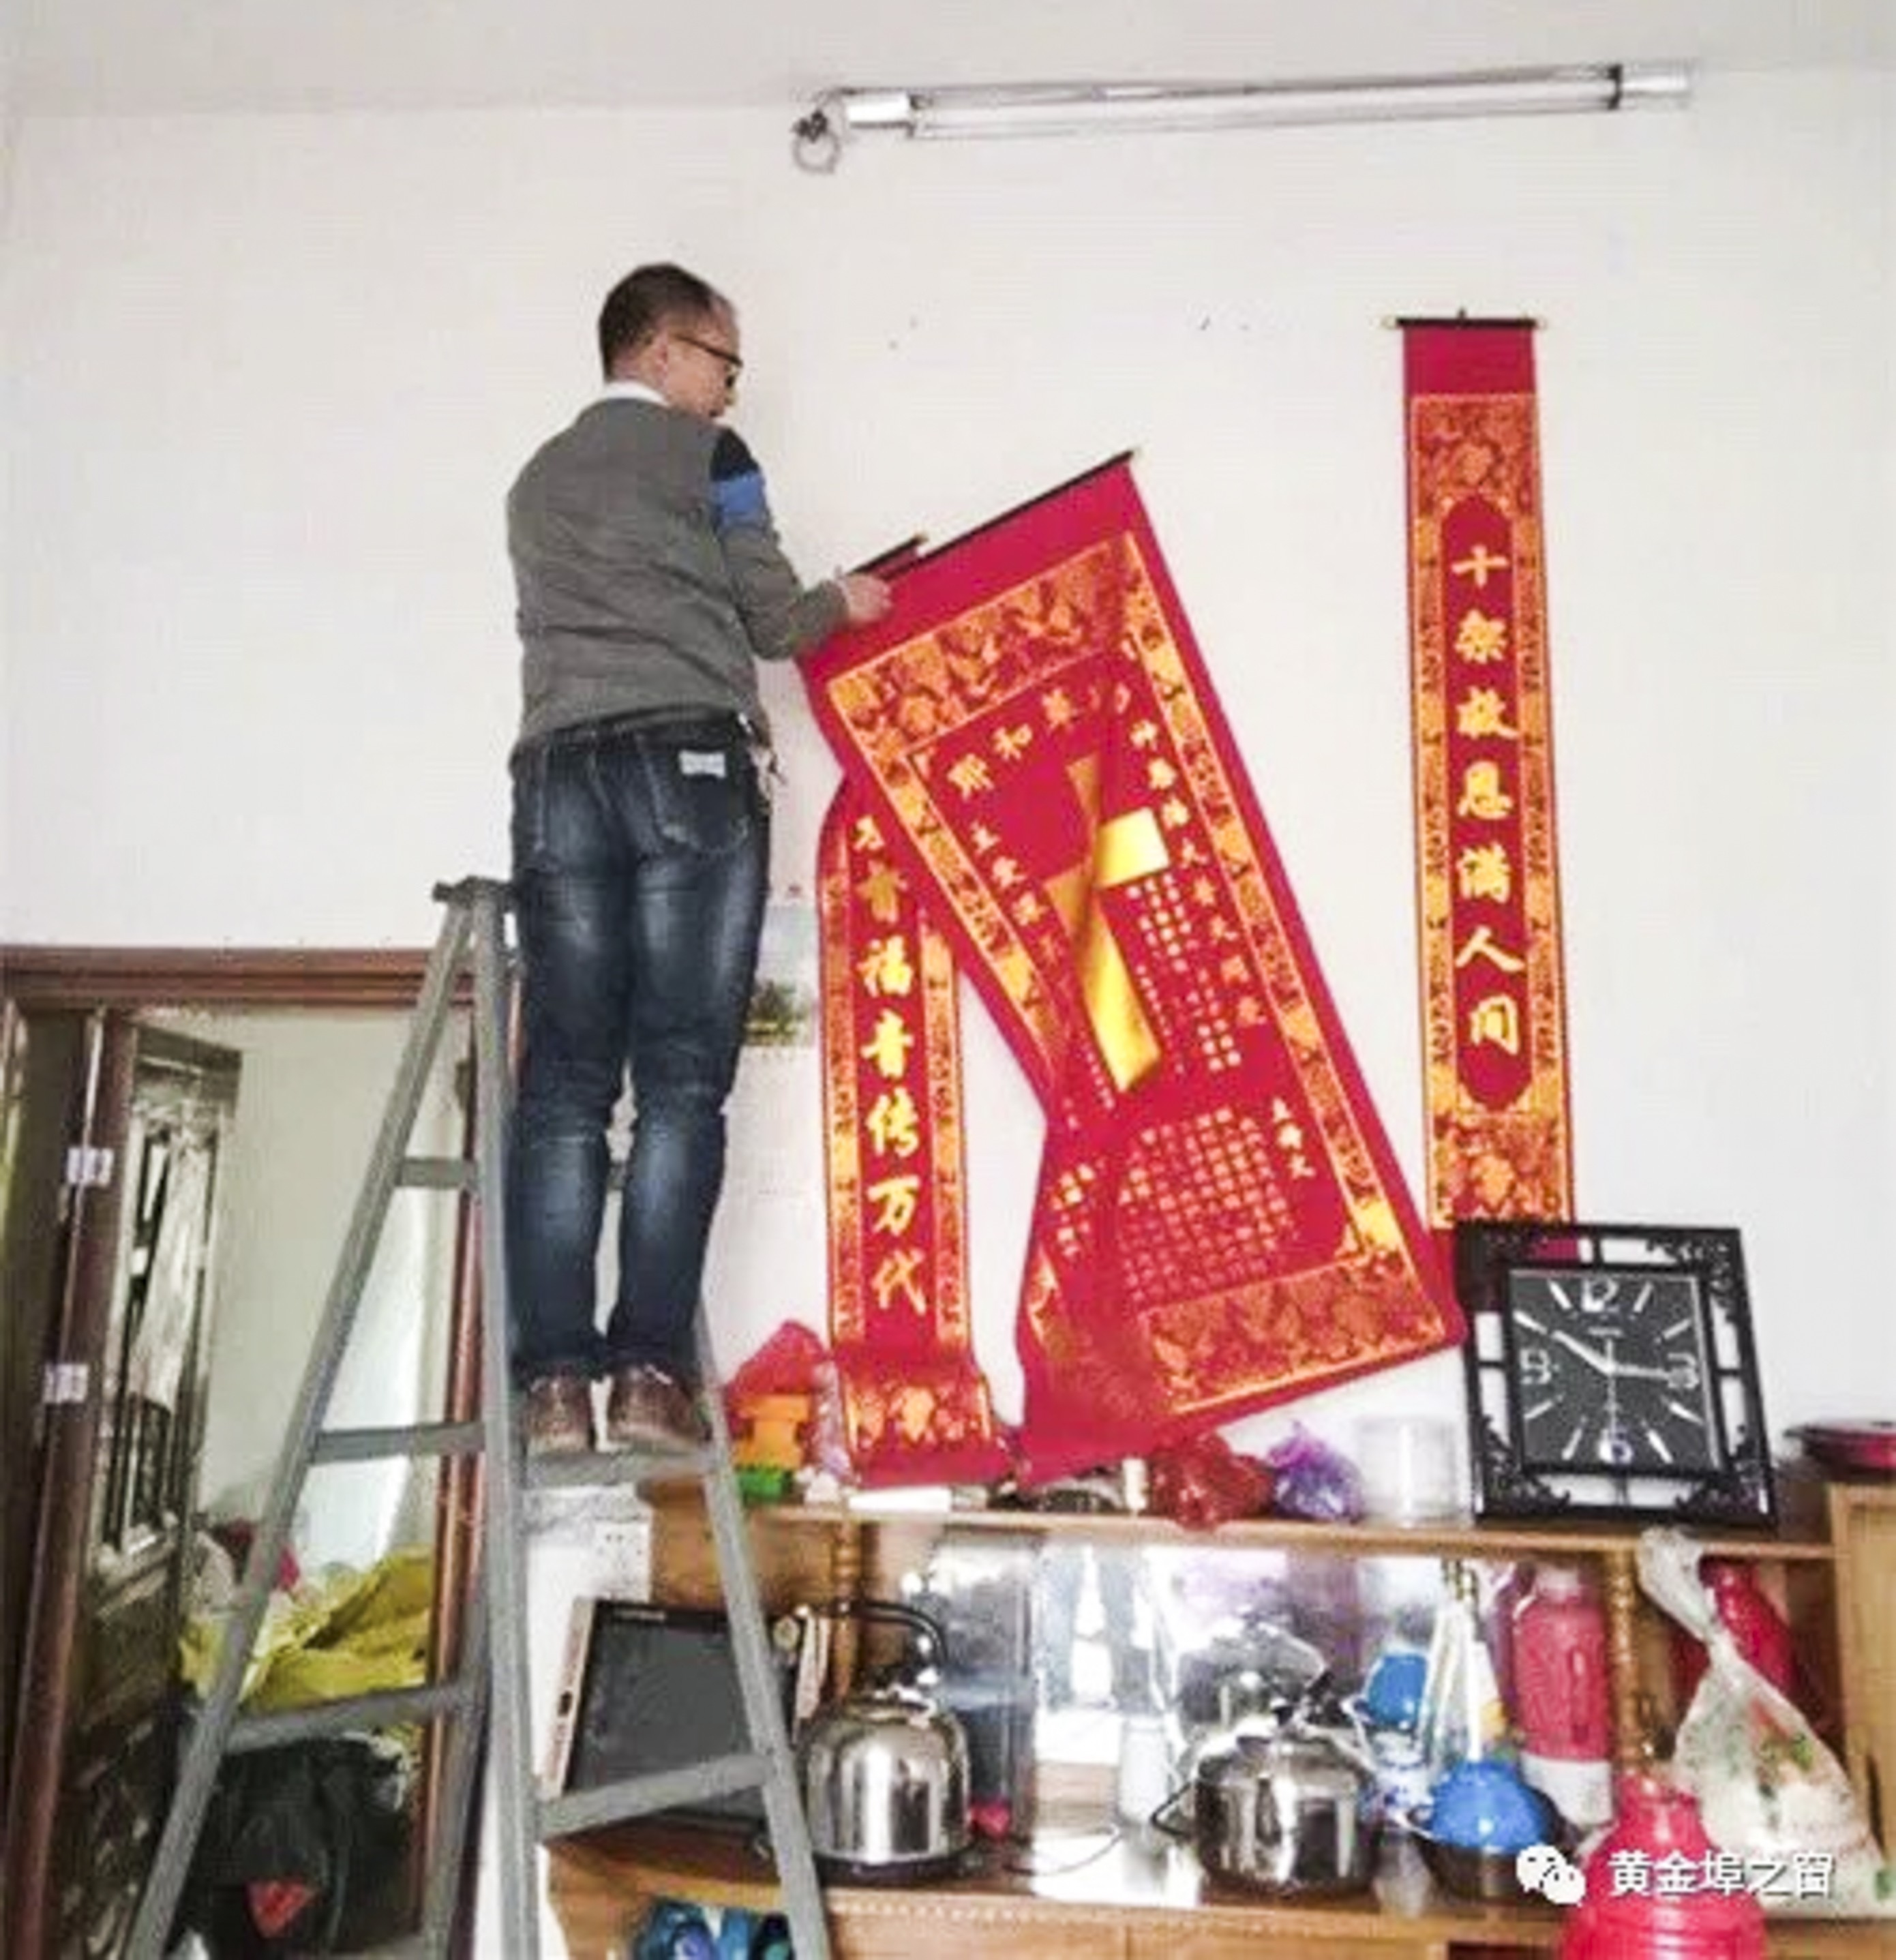 Men take down religious artifacts to replace by the picture of Xi in Yugan county of China. Image source: Lvv2.com